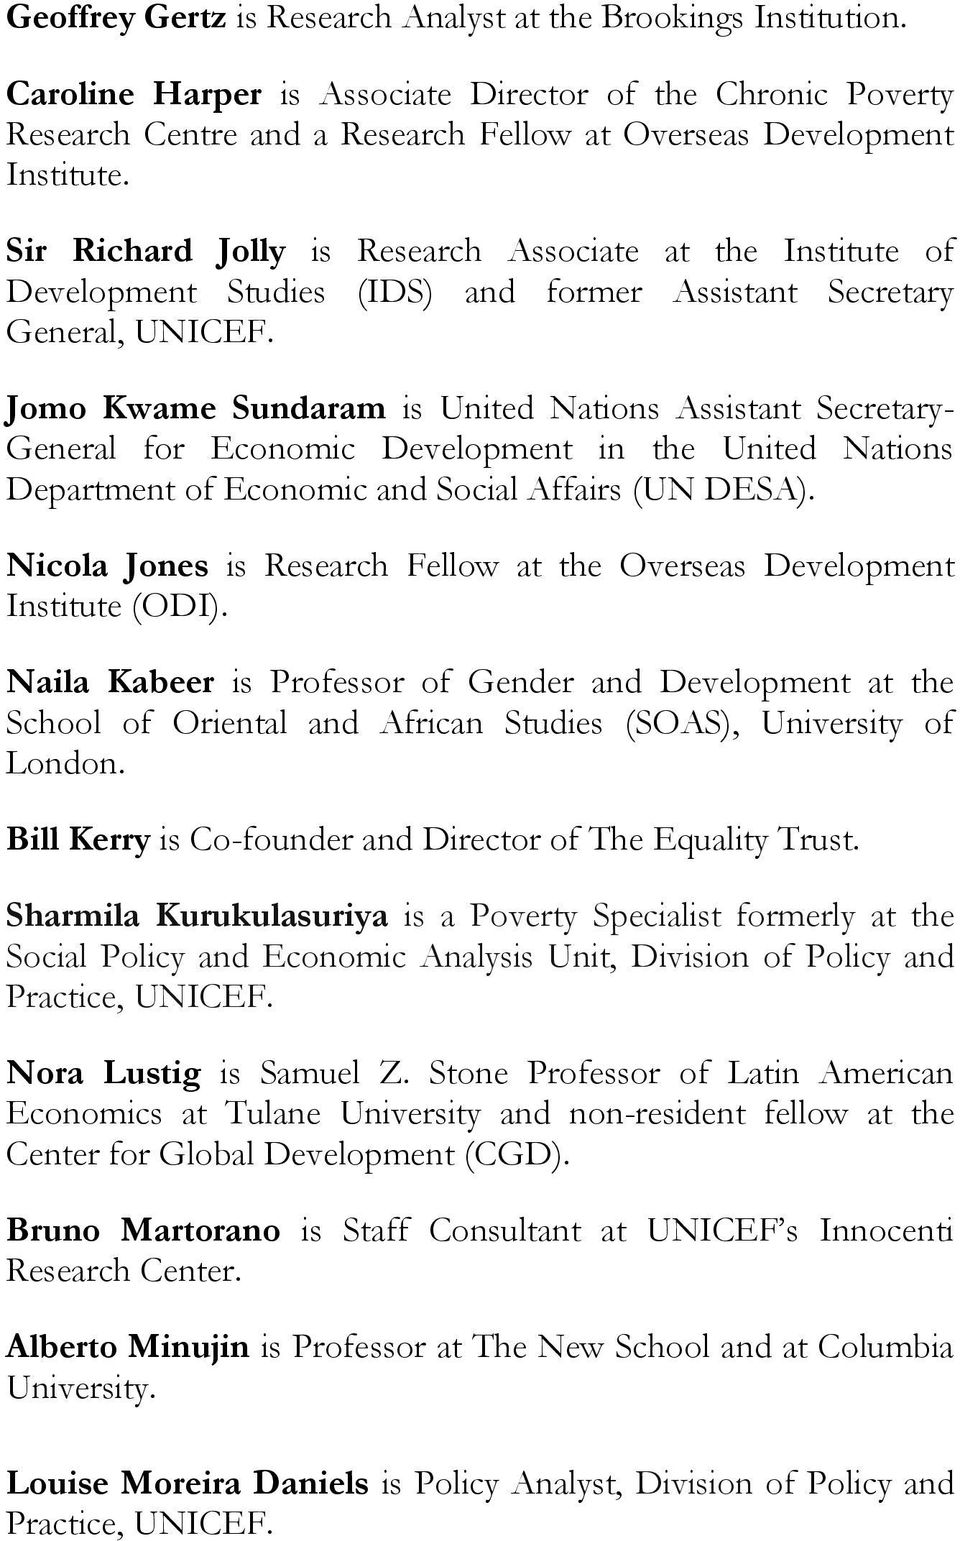 Jomo Kwame Sundaram is United Nations Assistant Secretary- General for Economic Development in the United Nations Department of Economic and Social Affairs (UN DESA).